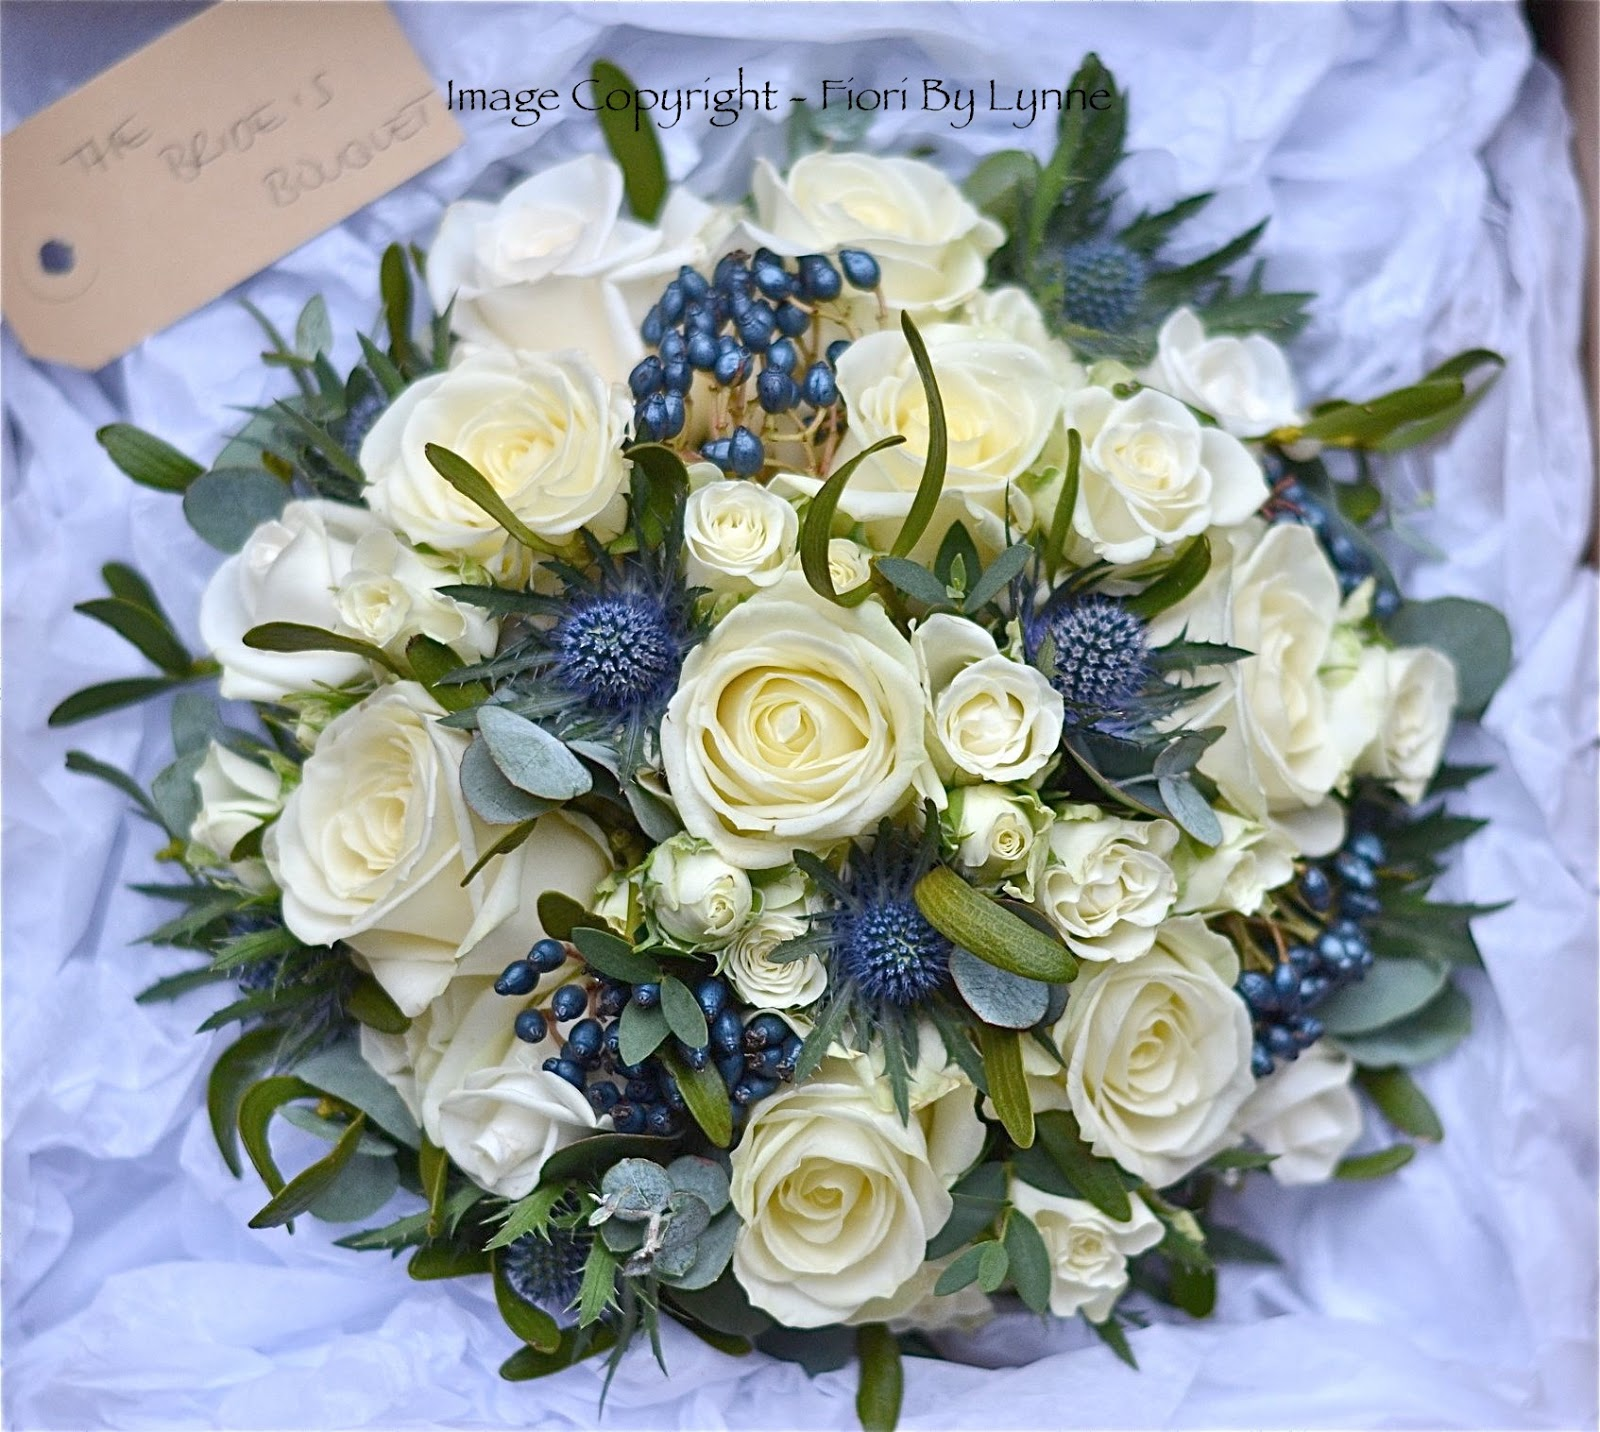 Wedding Bouquet Of Ivory Roses Thistles Navy Berries Eucalyptus And